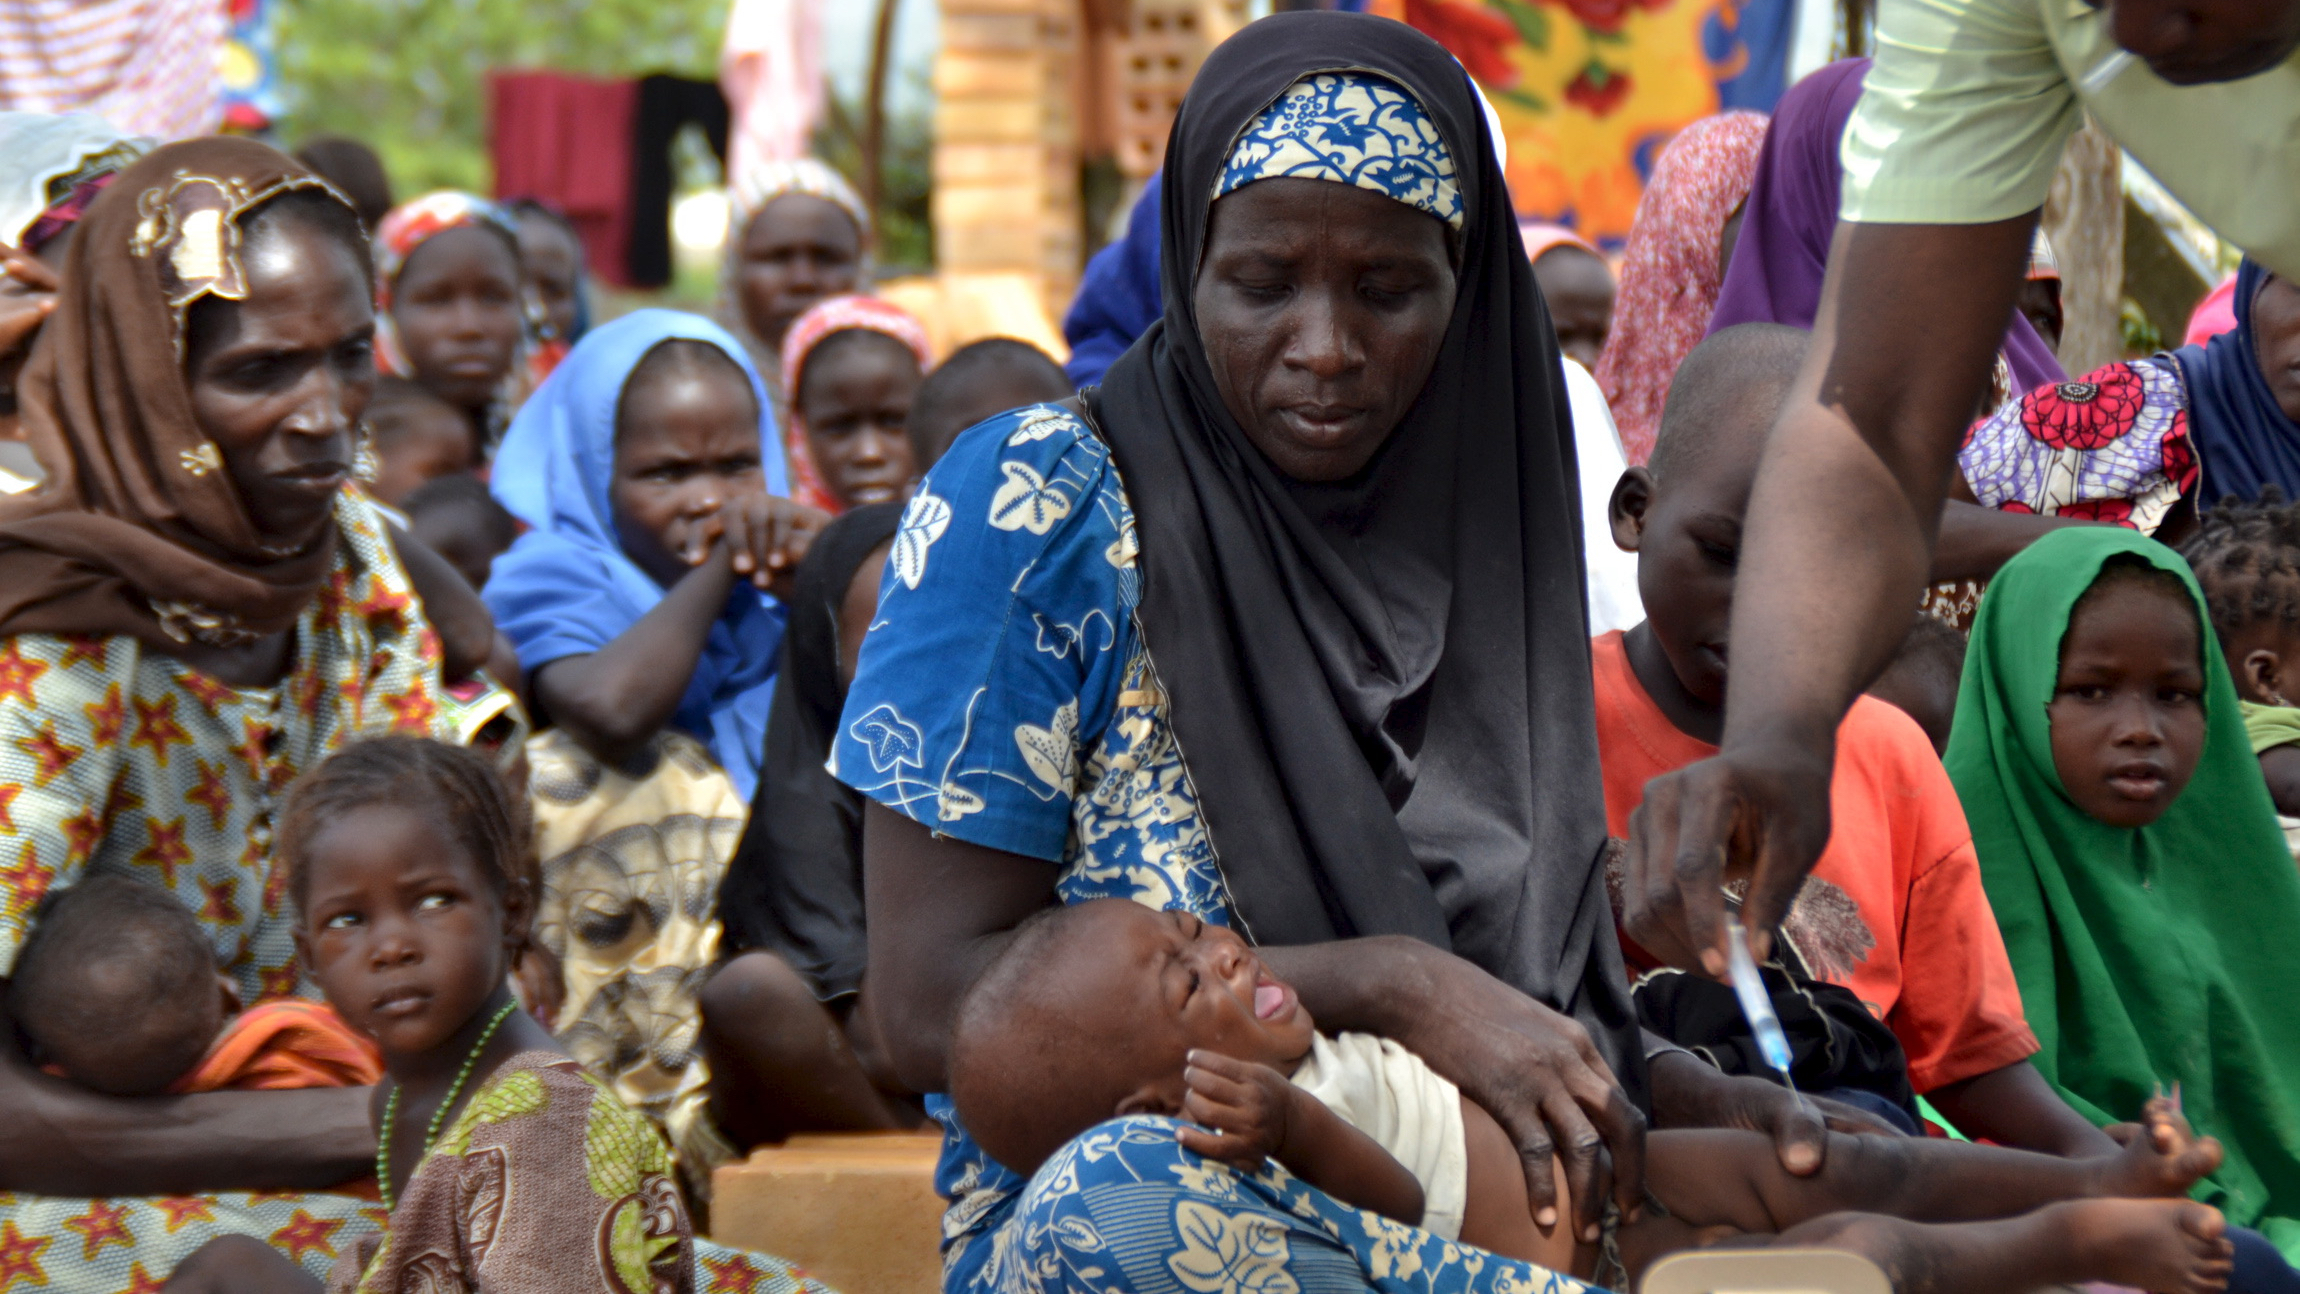 A woman carries her baby as a paramedic official administers an injection at an internal displaced person's camp, after they were rescued with other abductees from Boko Haram, near Mubi, northeast Nigeria October 29, 2015. Nigeria's armed forces on Wednesday said it had rescued 338 people held captive by Boko Haram and raided a number of the Islamist militant group's camps on the edge of its stronghold in the northeast's Sambisa forest. Picture taken October 29, 2015. REUTERS/Stringer - RTX1TX8Y